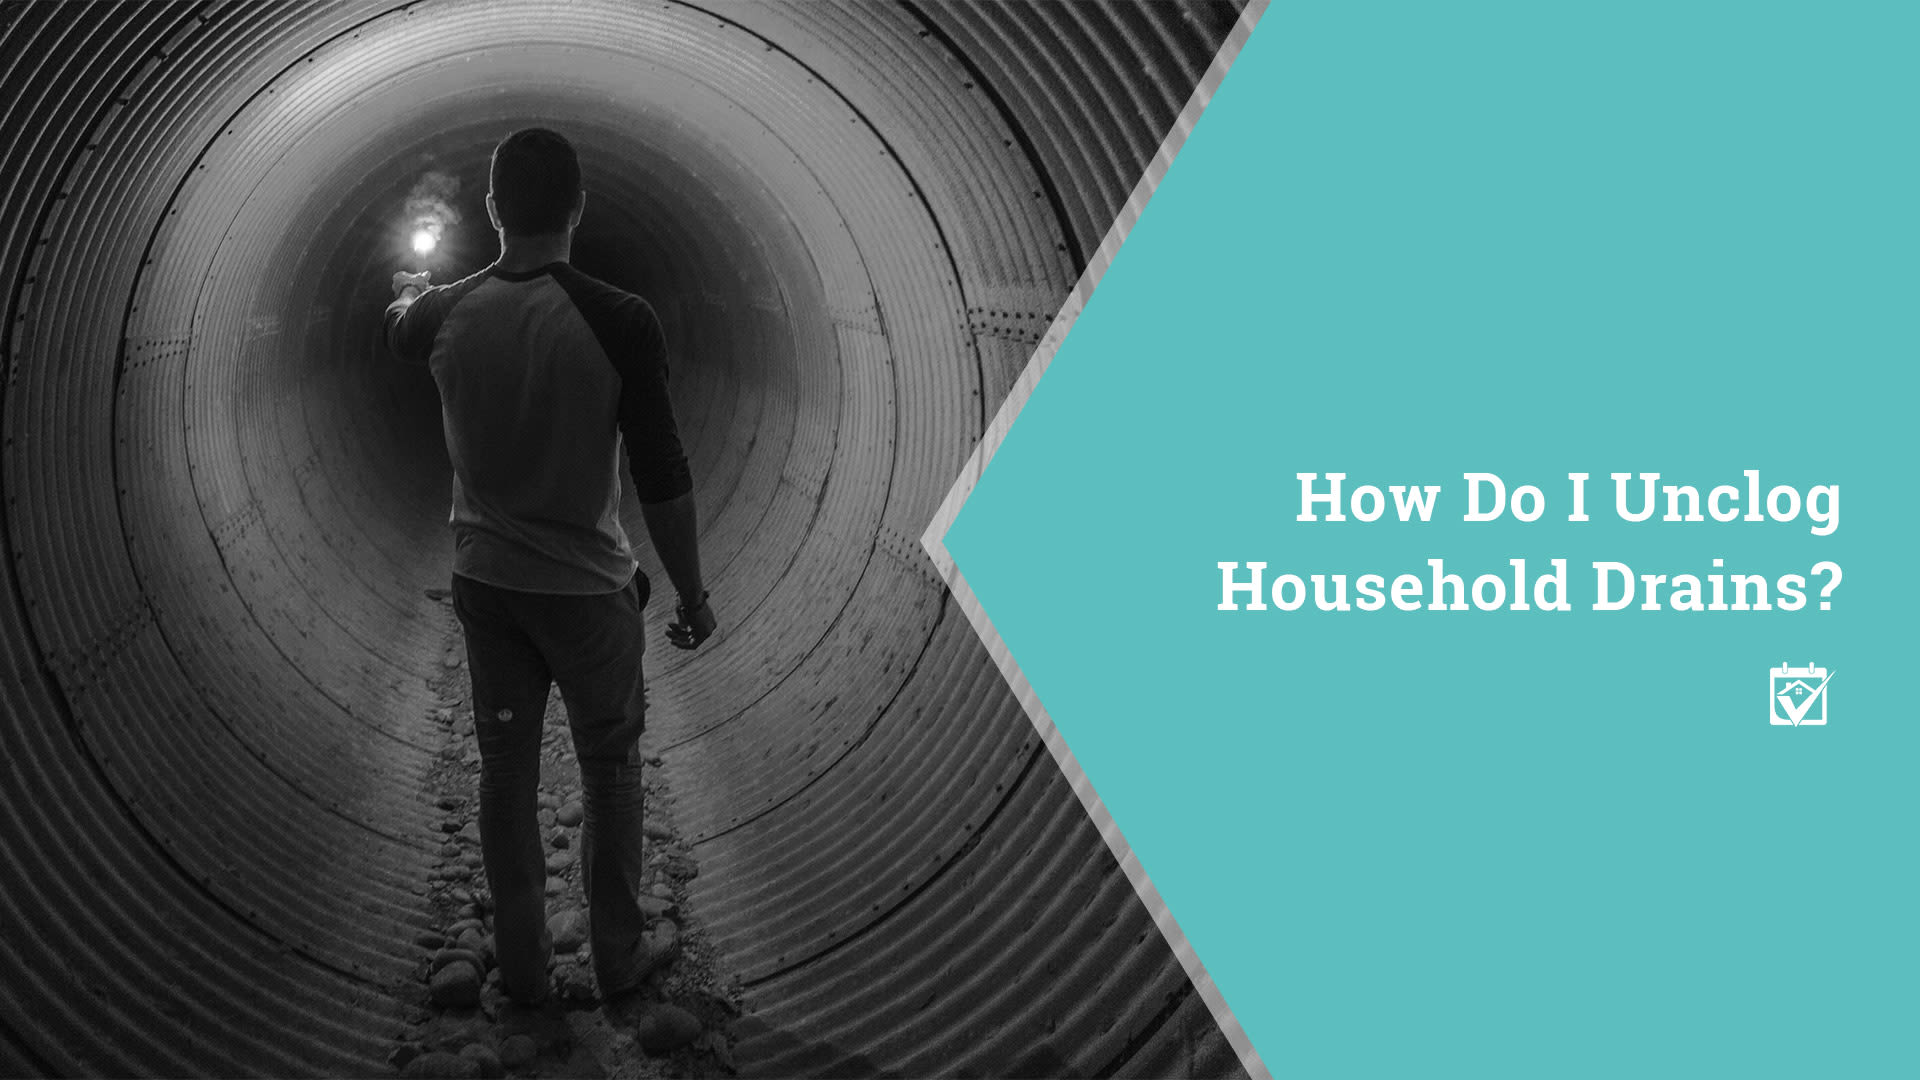 How Do I Unclog Household Drains?